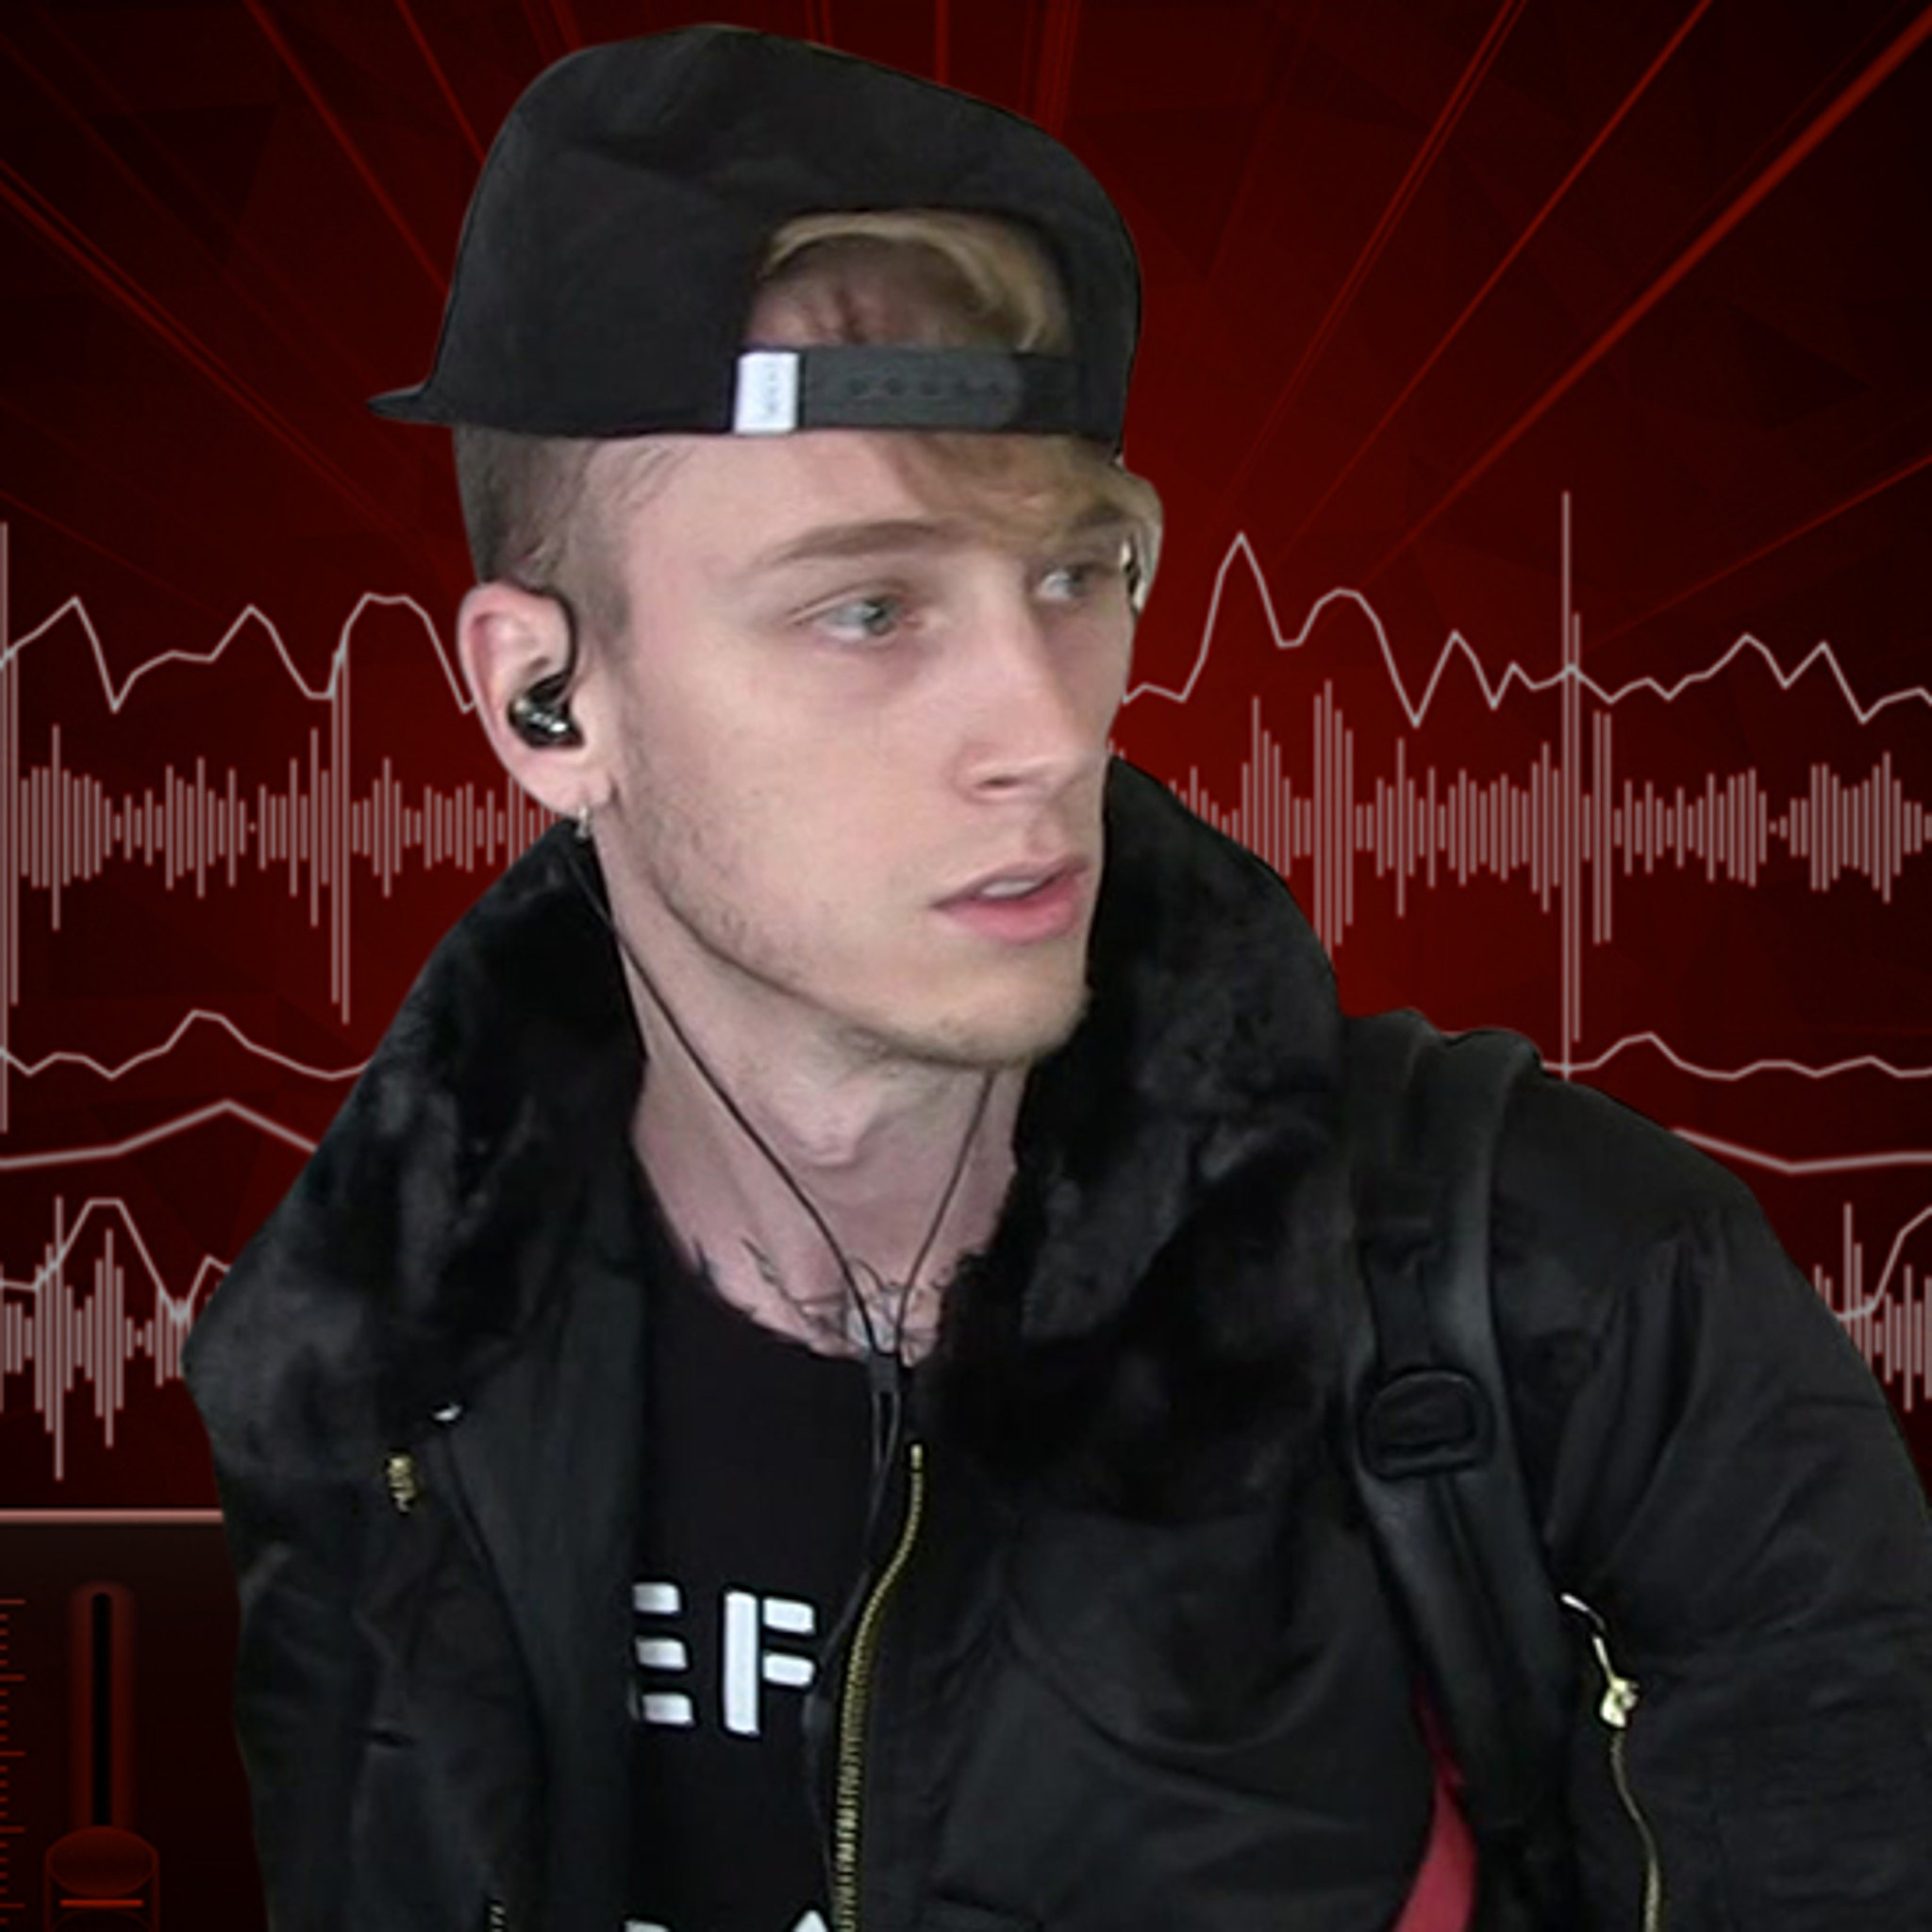 Machine Gun Kelly S Crew Just Jumped This Man 911 Call Released